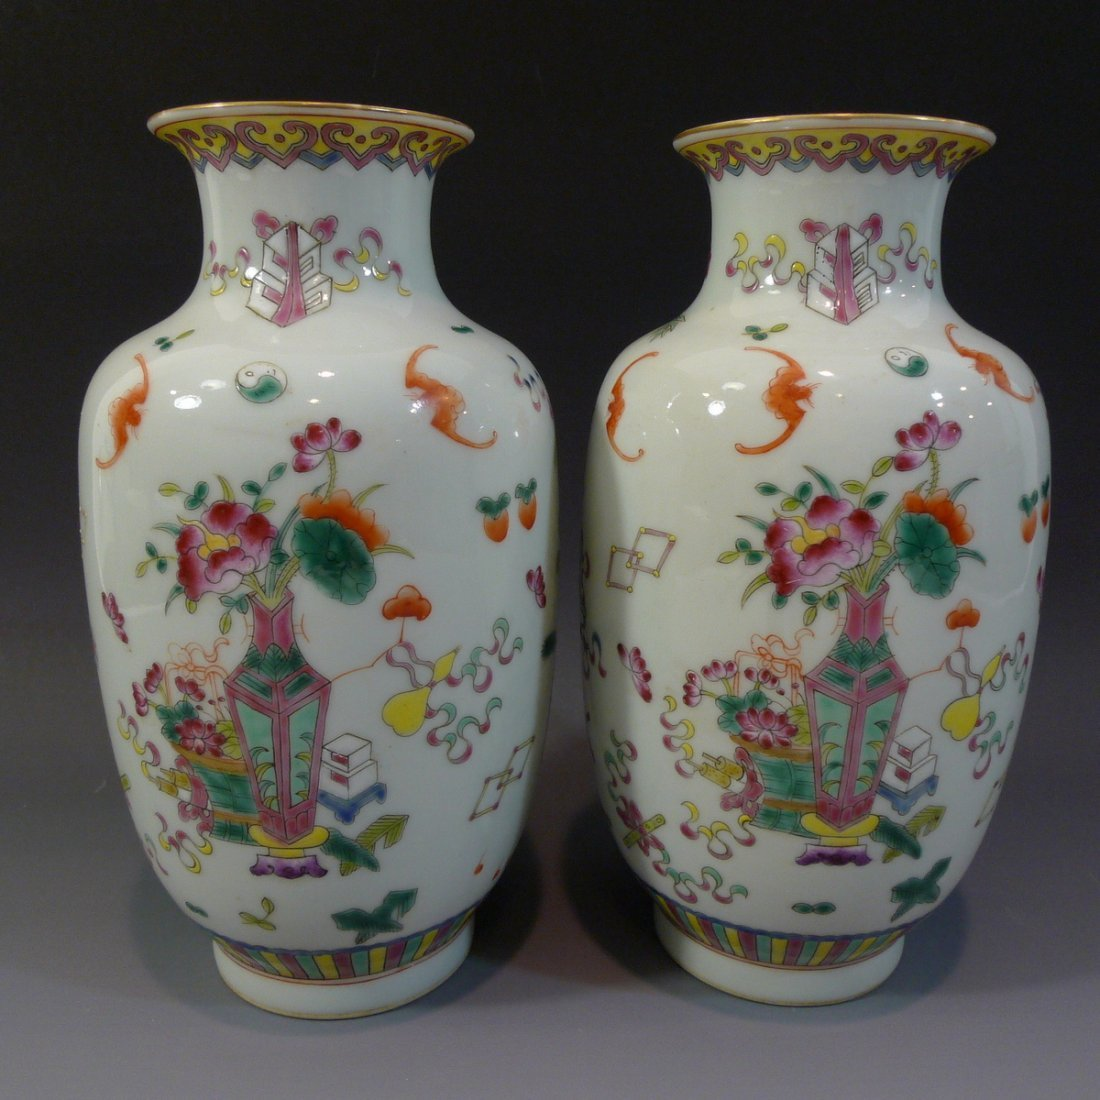 PAIR ANTIQUE CHINESE FAMILLE ROSE PORCELAIN VASE - 4